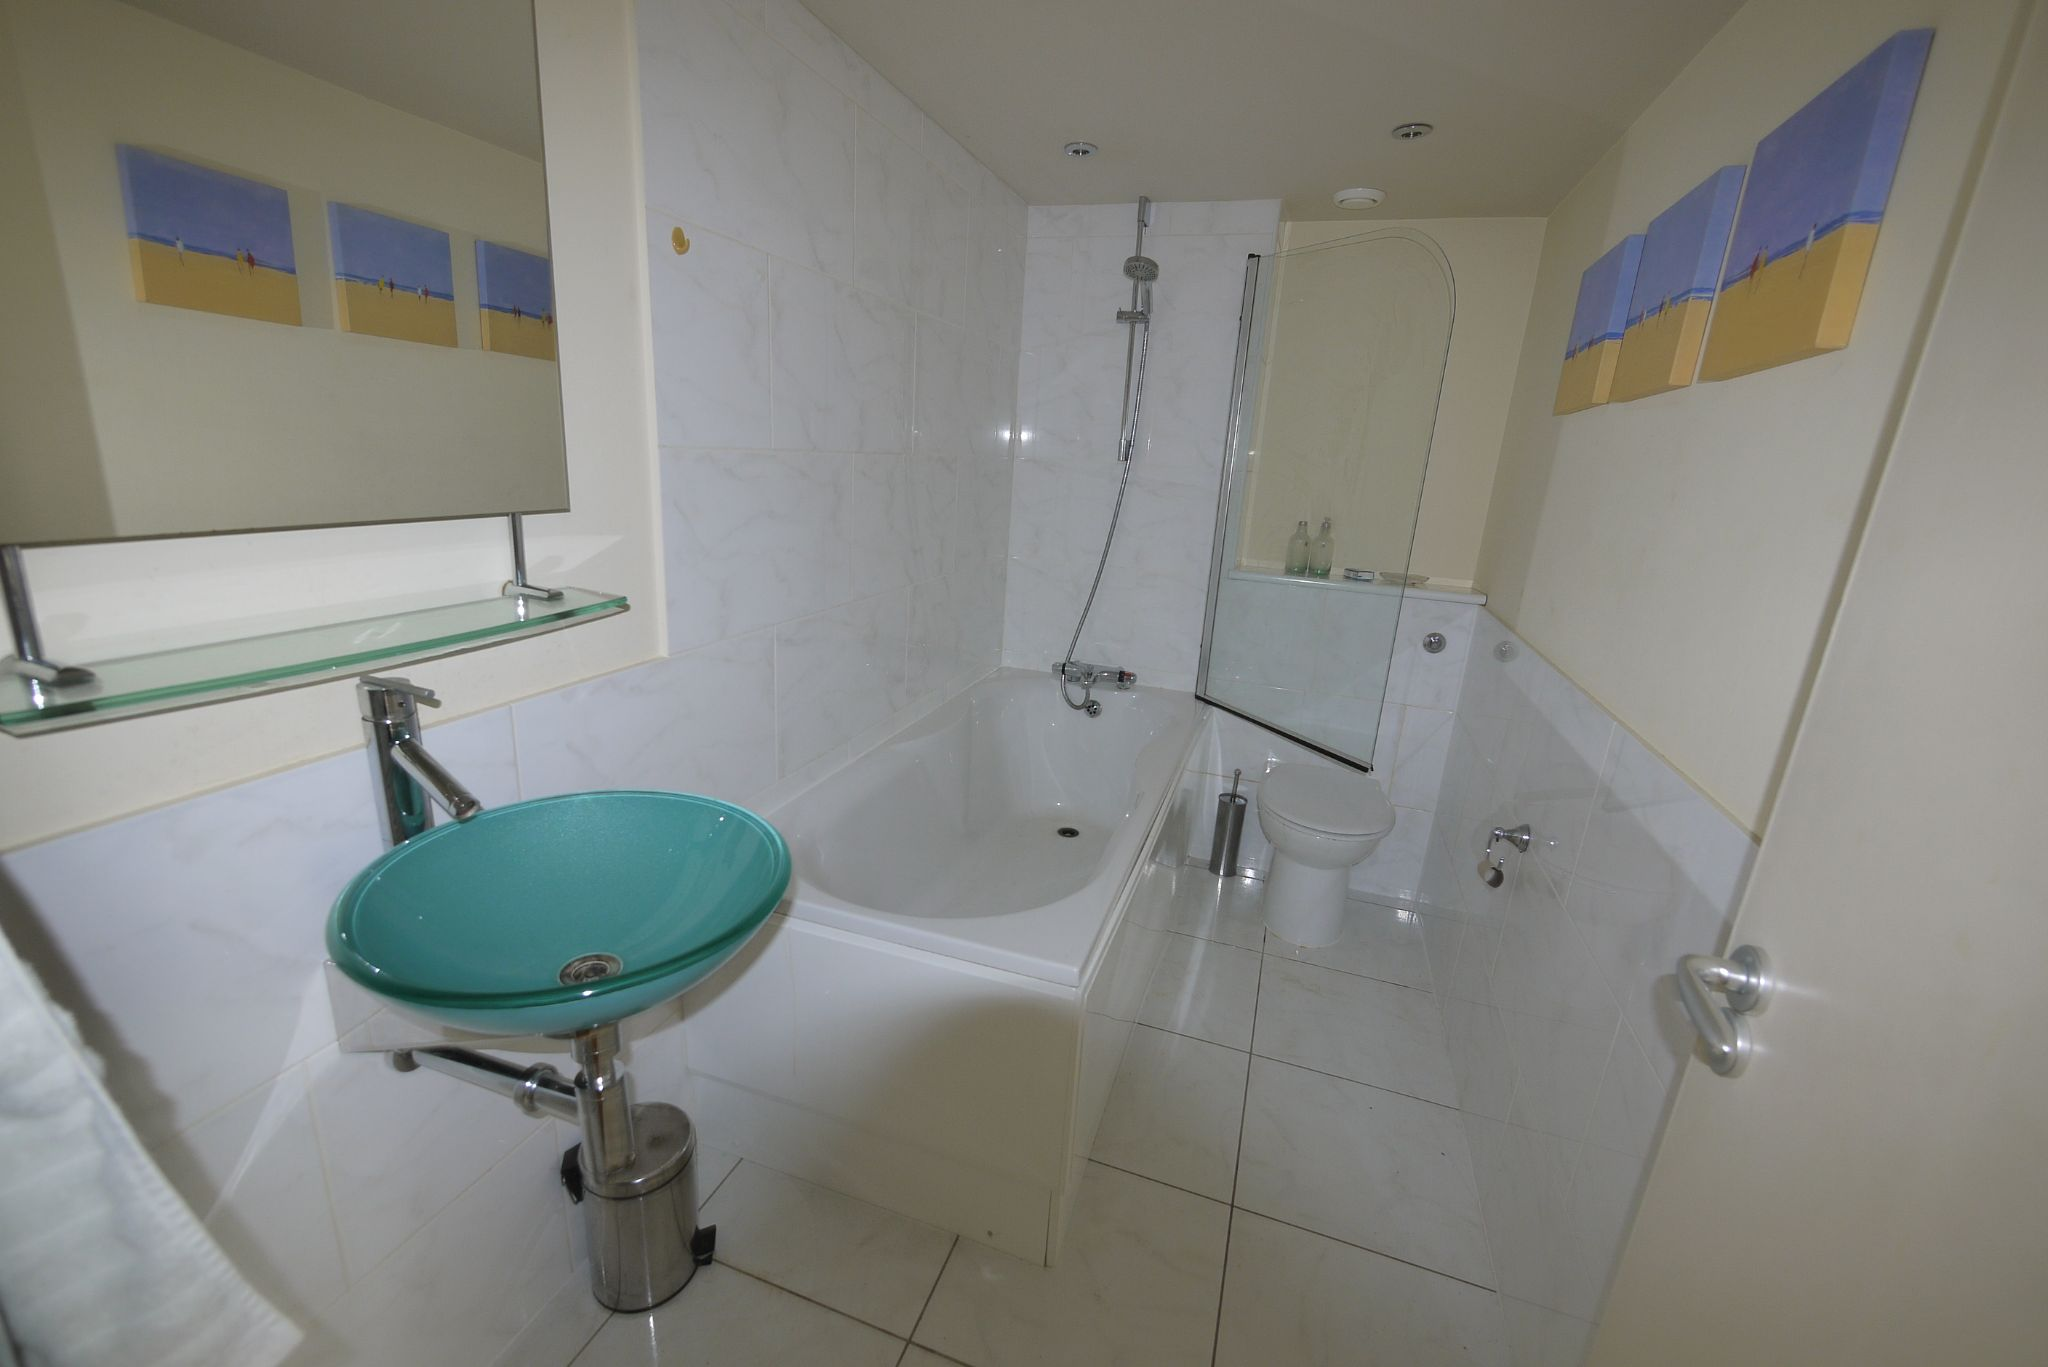 1 bedroom apartment flat/apartment SSTC in Brighouse - Bathroom.